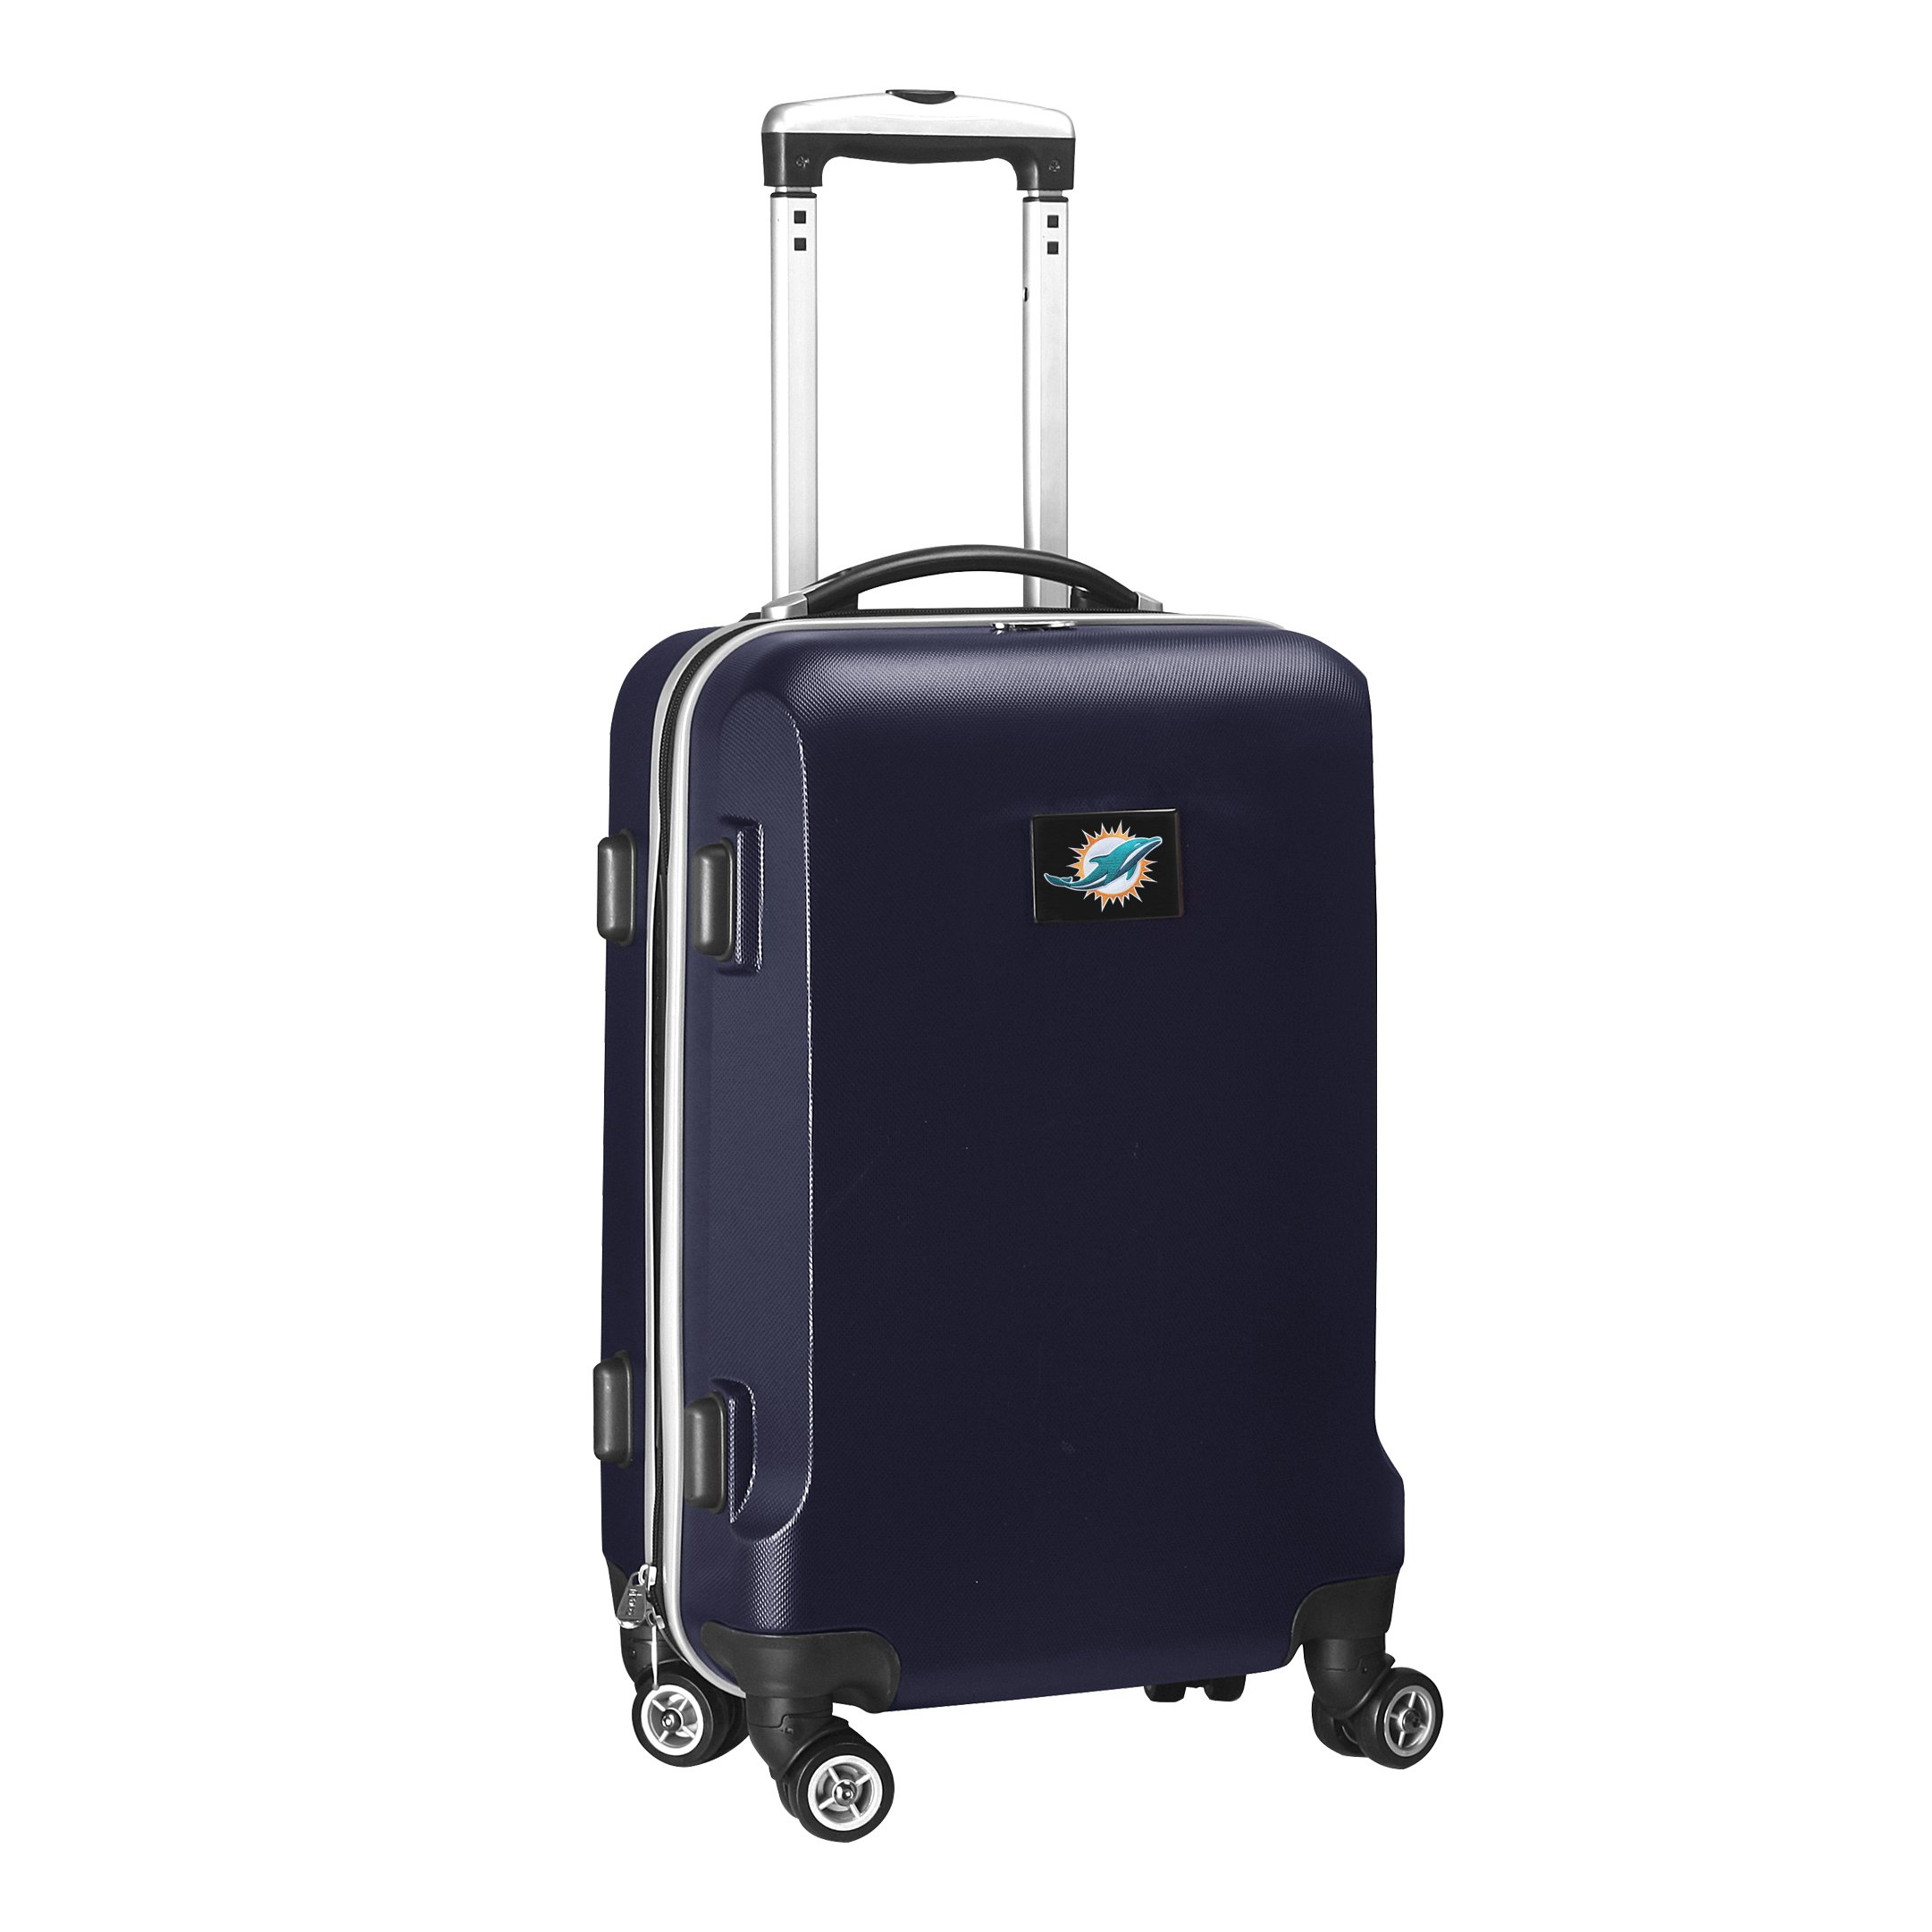 Denco NFL Miami Dolphins Carry-On Hardcase Luggage Spinner, Navy by Denco (Image #2)